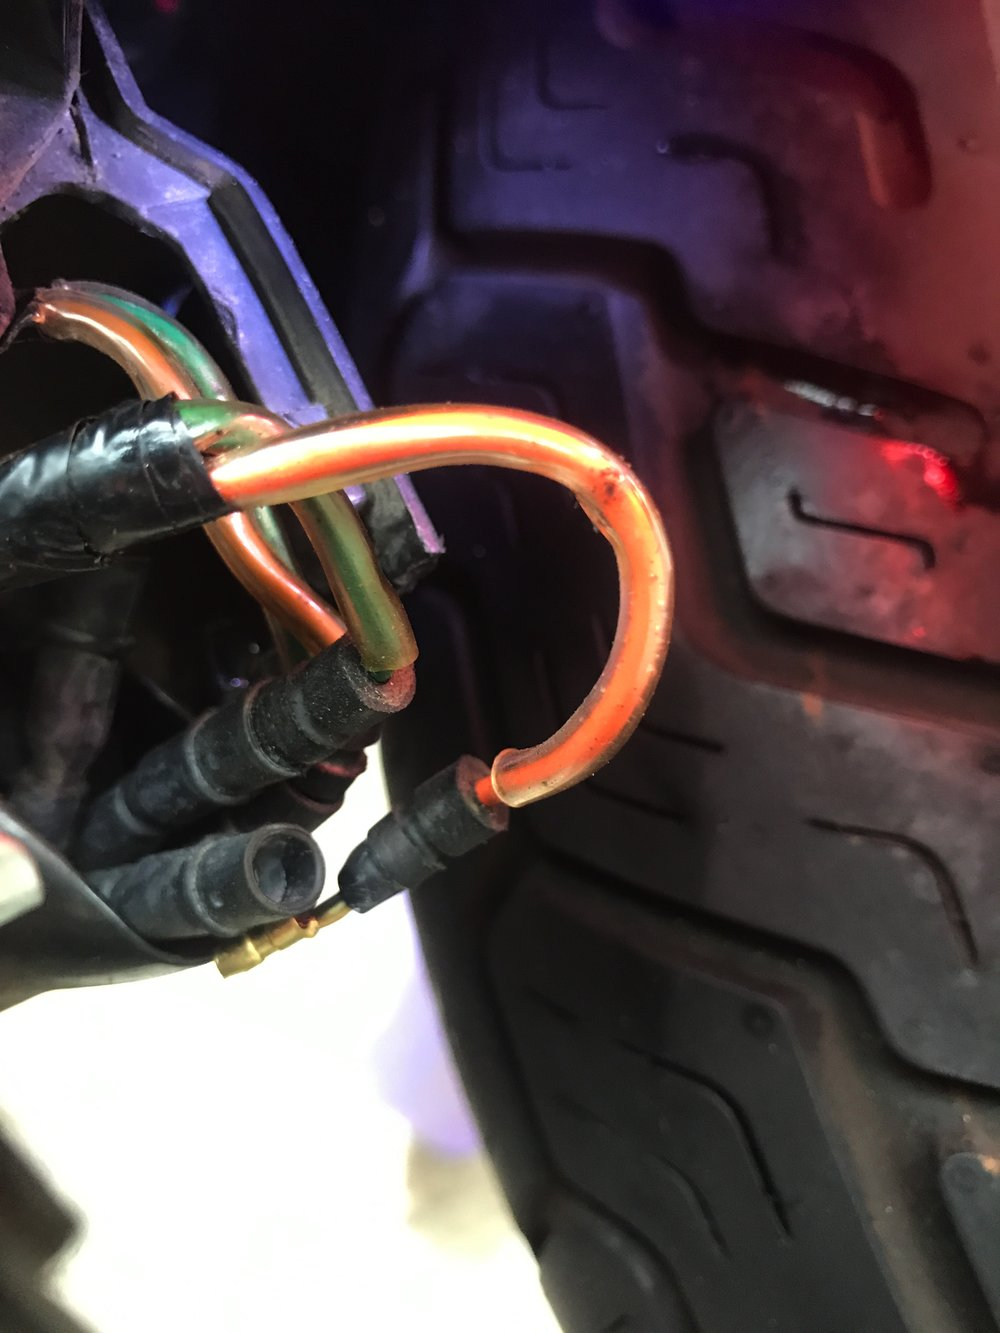 You can see the disconnected bullet connector hanging. Also, all the plastic and rubber used to protect against fender splashback.